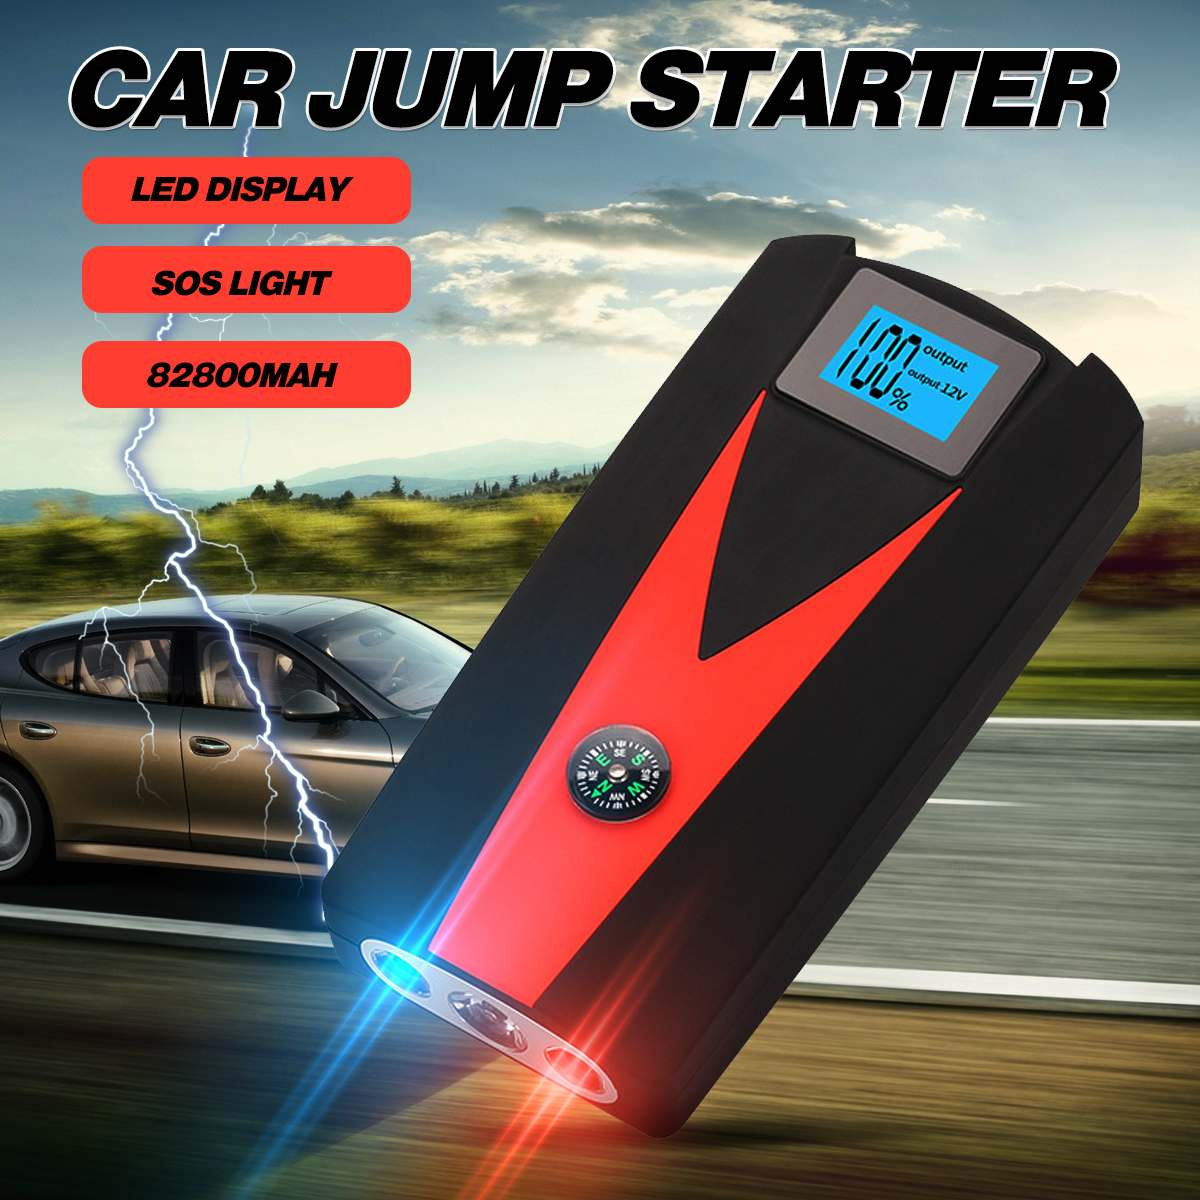 82800mAh 2USB LED Car Jump Starter Power Bank 800A Waterproof Portable Car Mobile Battery Booster Charger 12V Starting Device